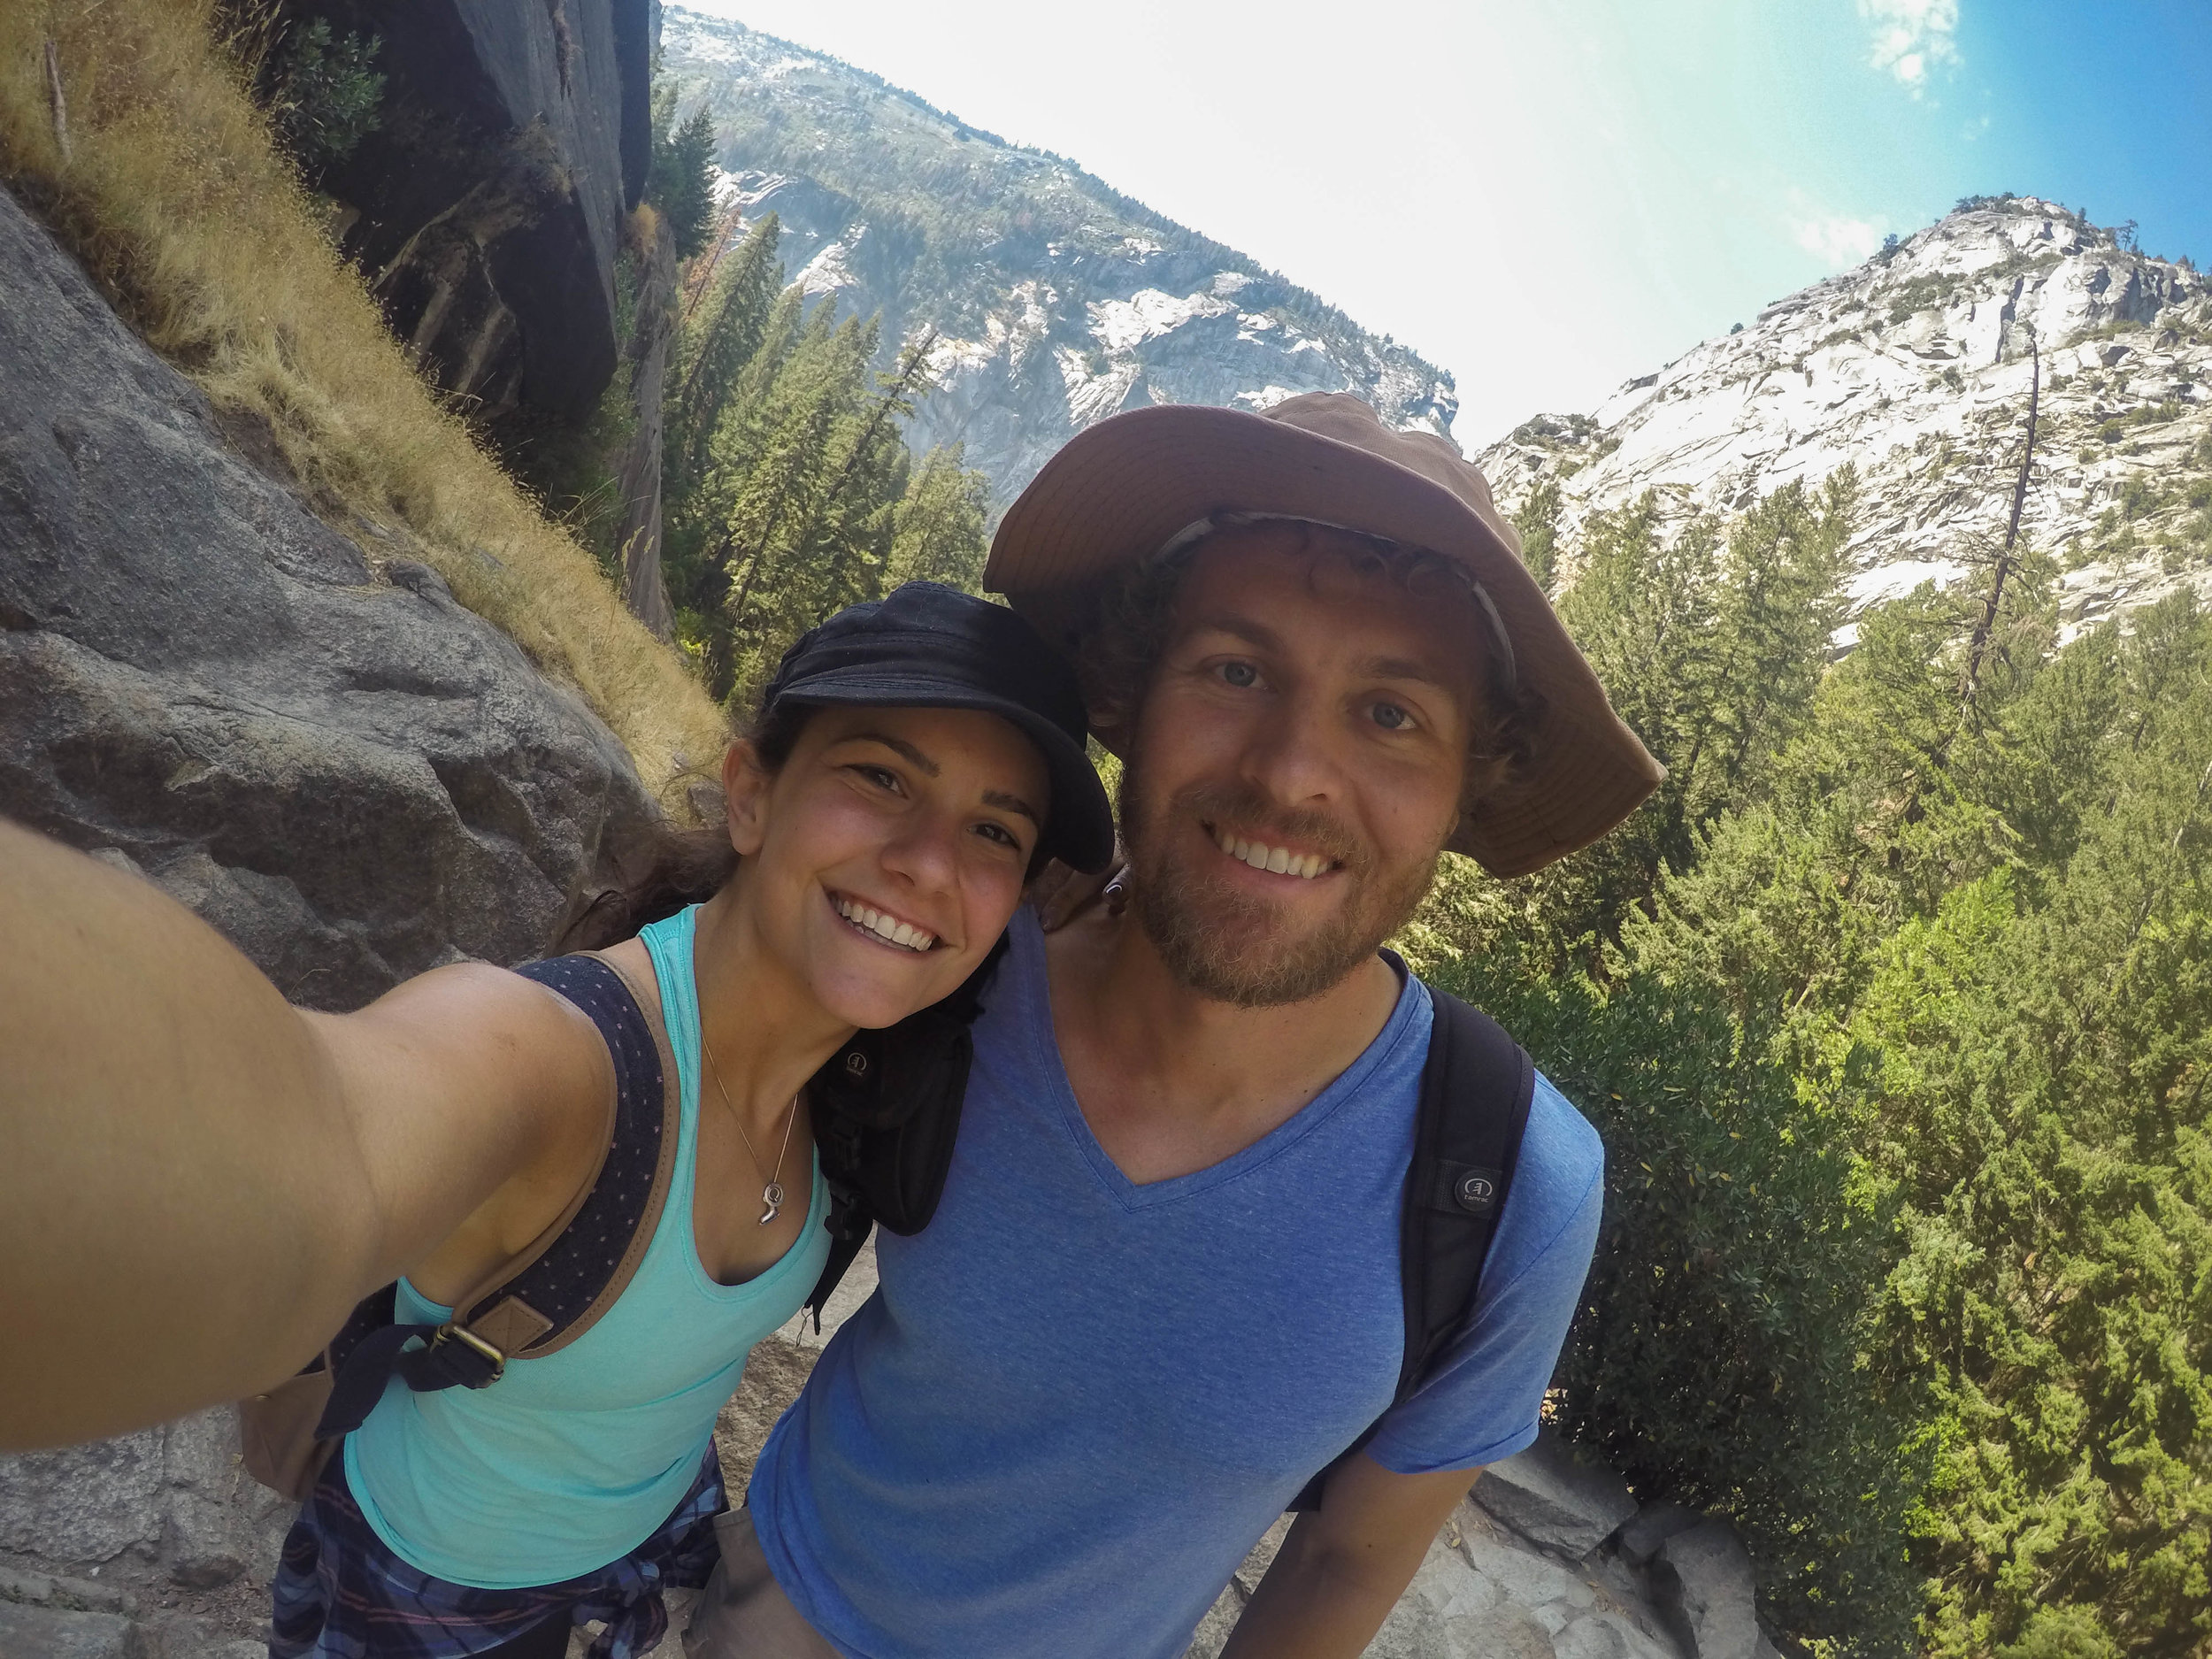 First time at Yosemite together, hiking to Vernal Falls!